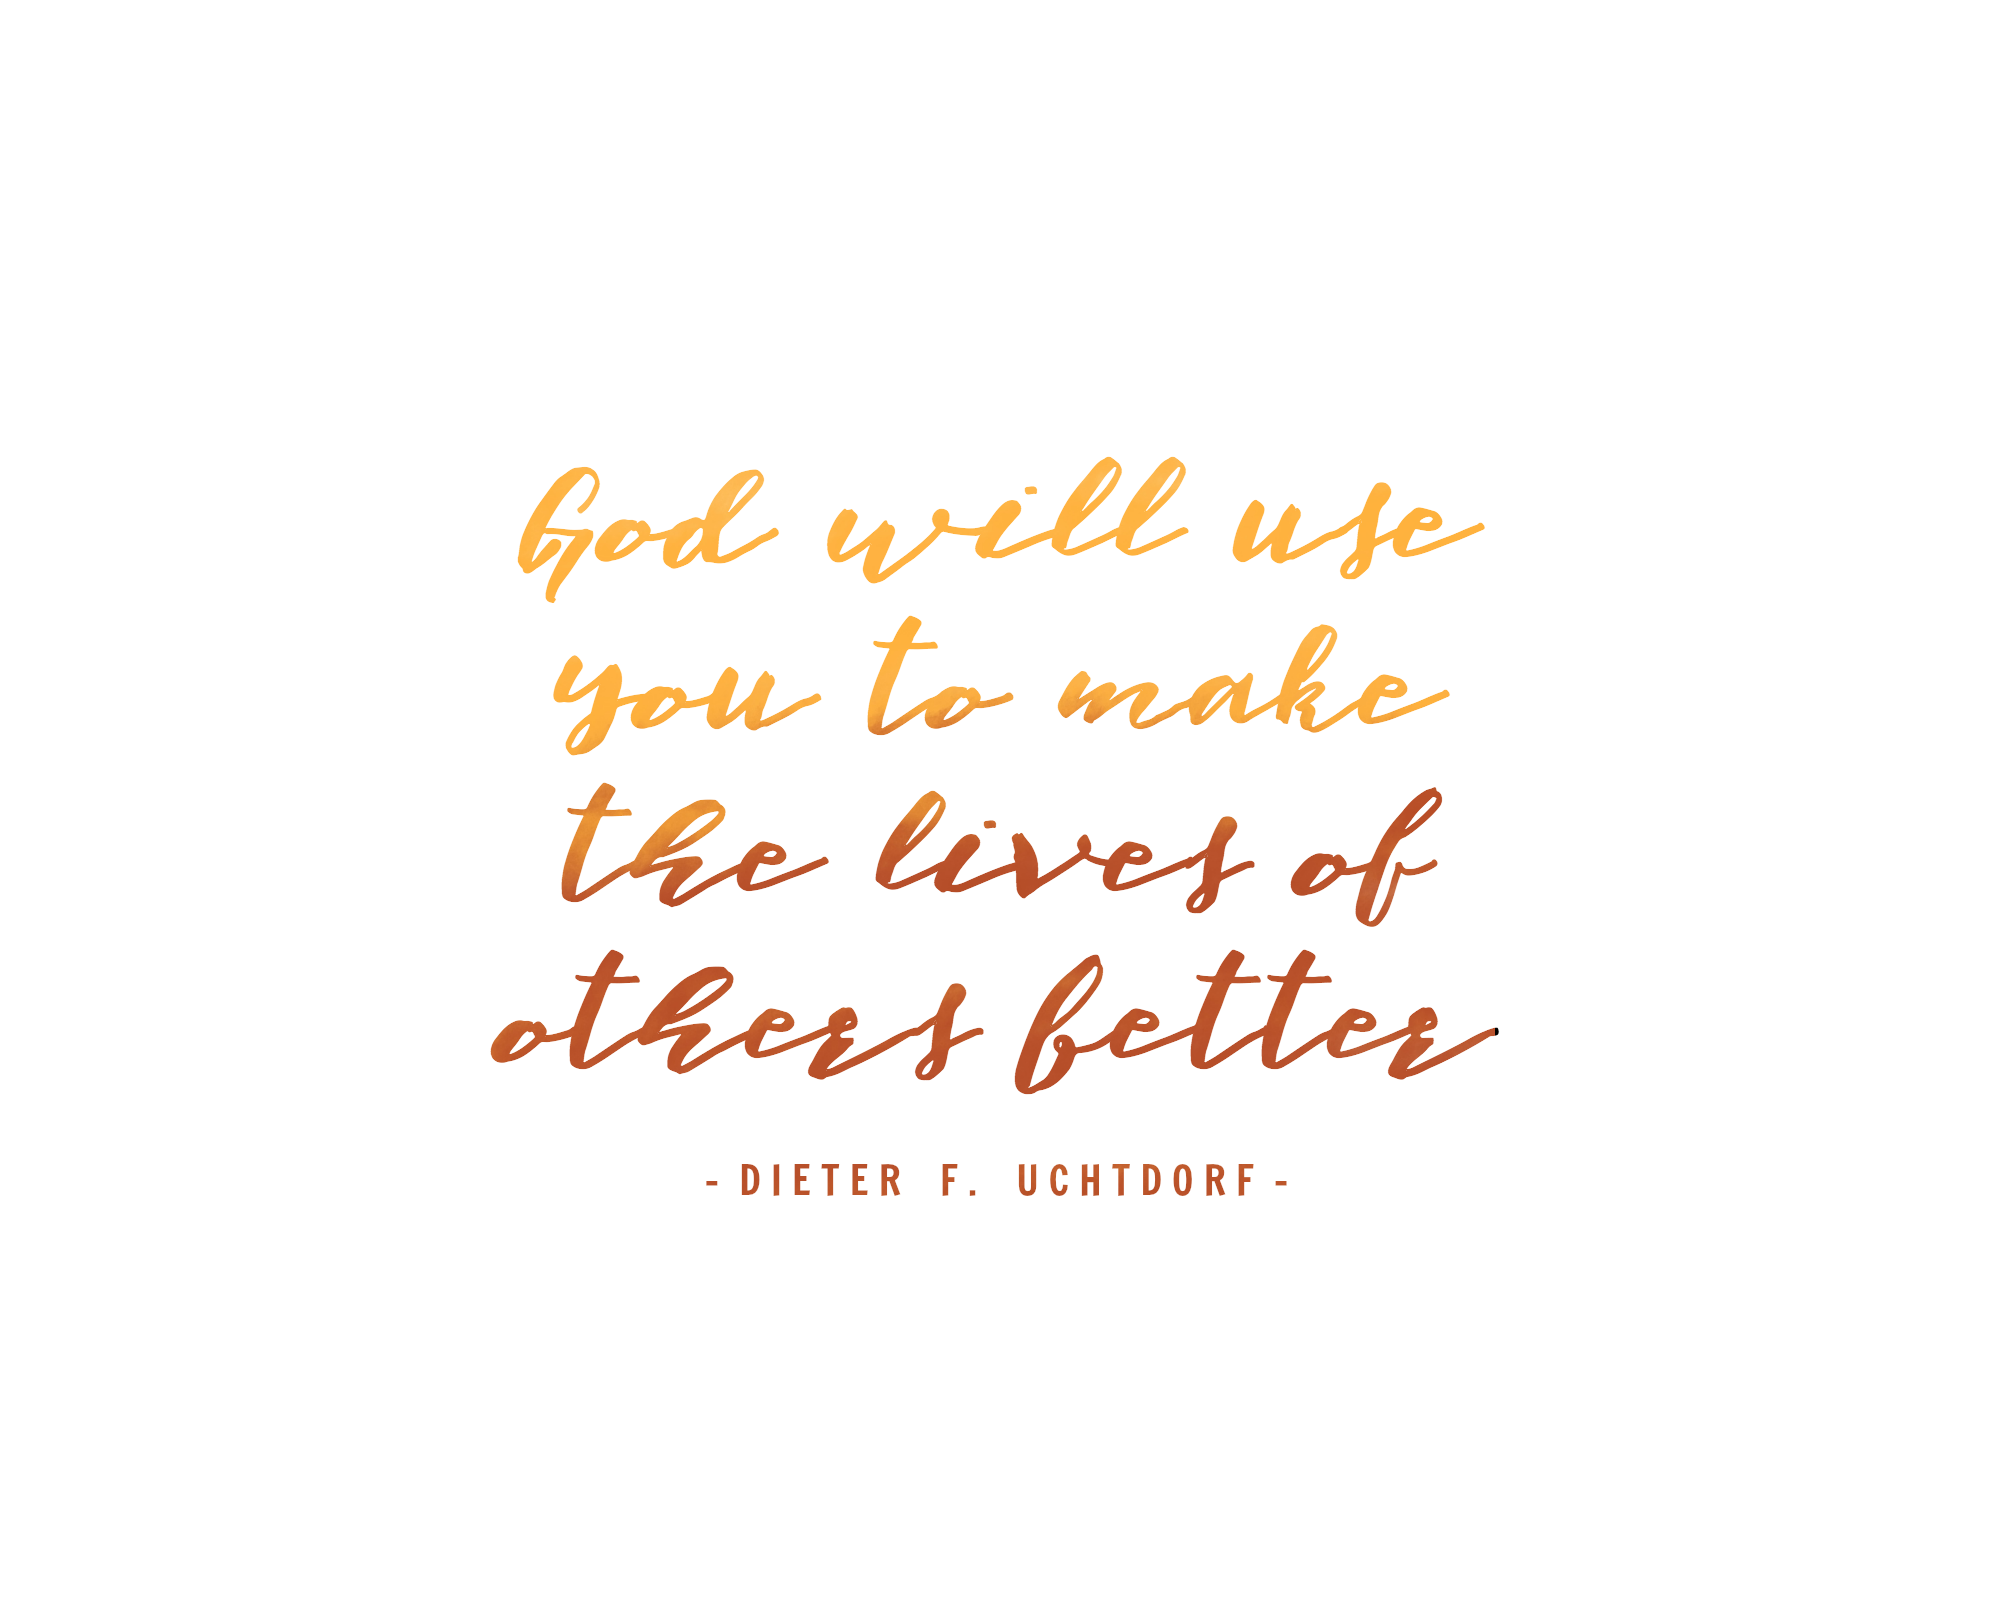 God will use you to make the lives of others better - Dieter F. Uchtdorf | General Conference Quote | October 2017